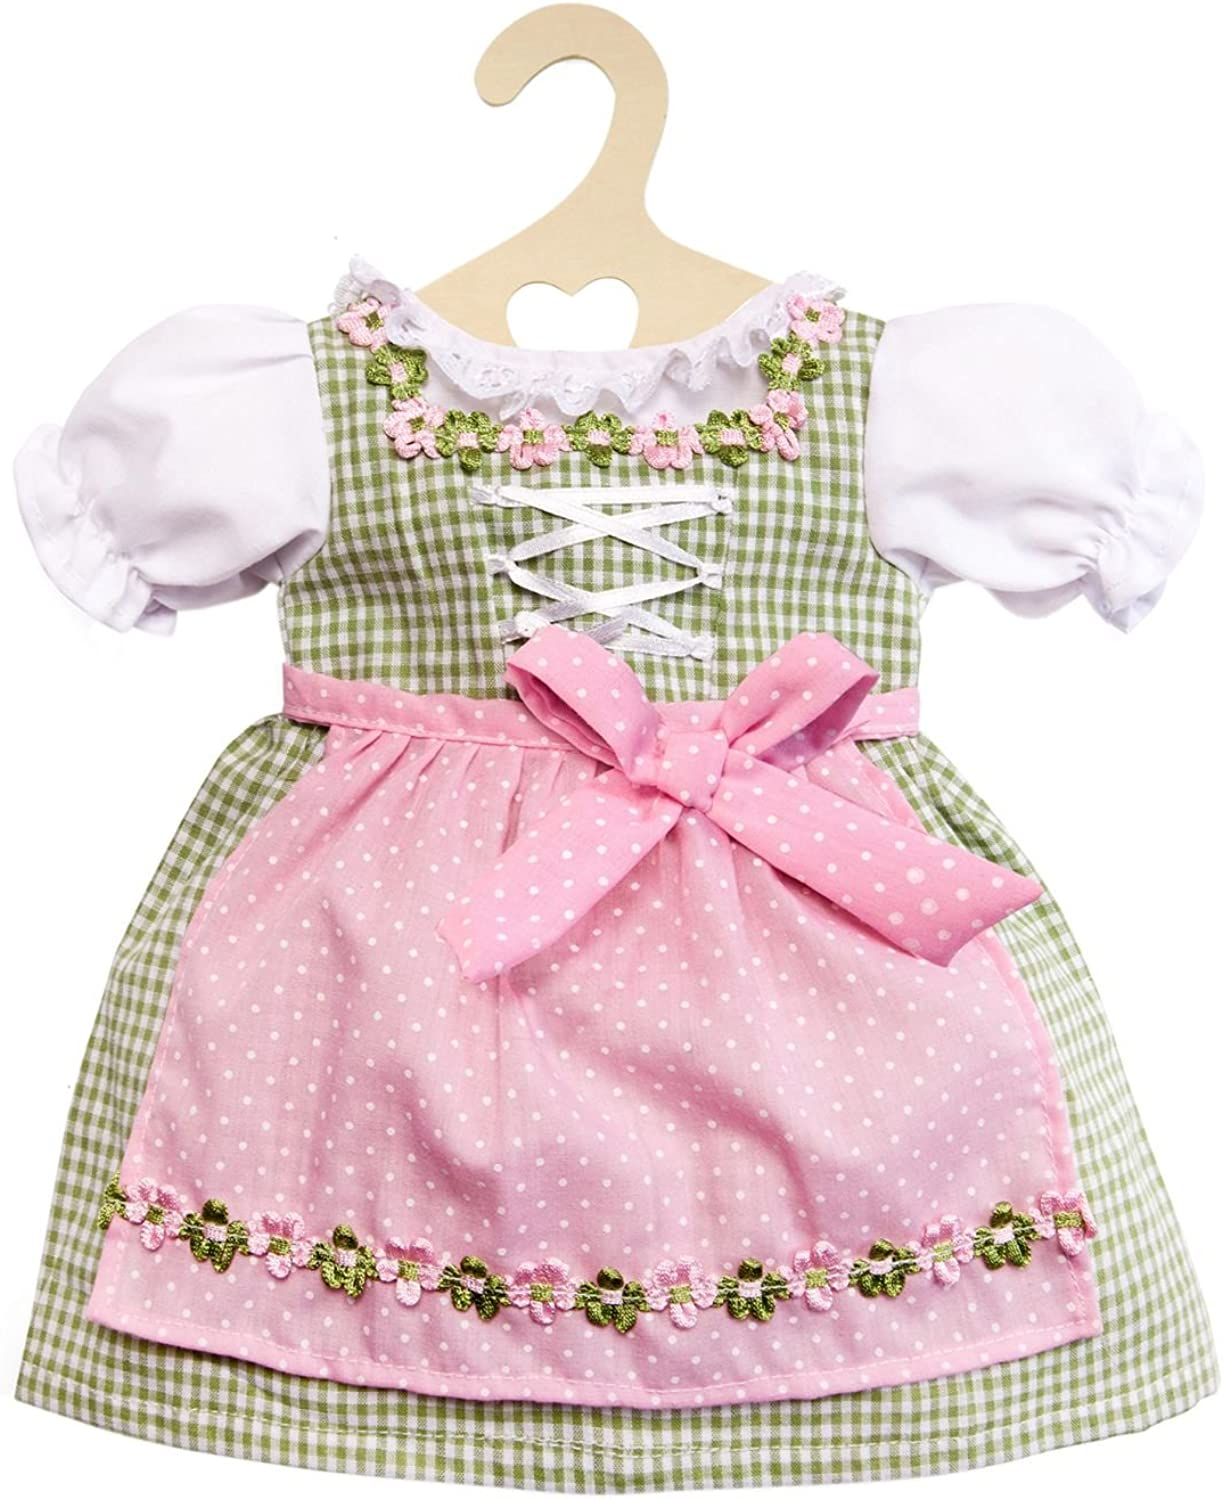 Heless 1111Heless Dirndl Traditional Dress for Small Doll by Heless